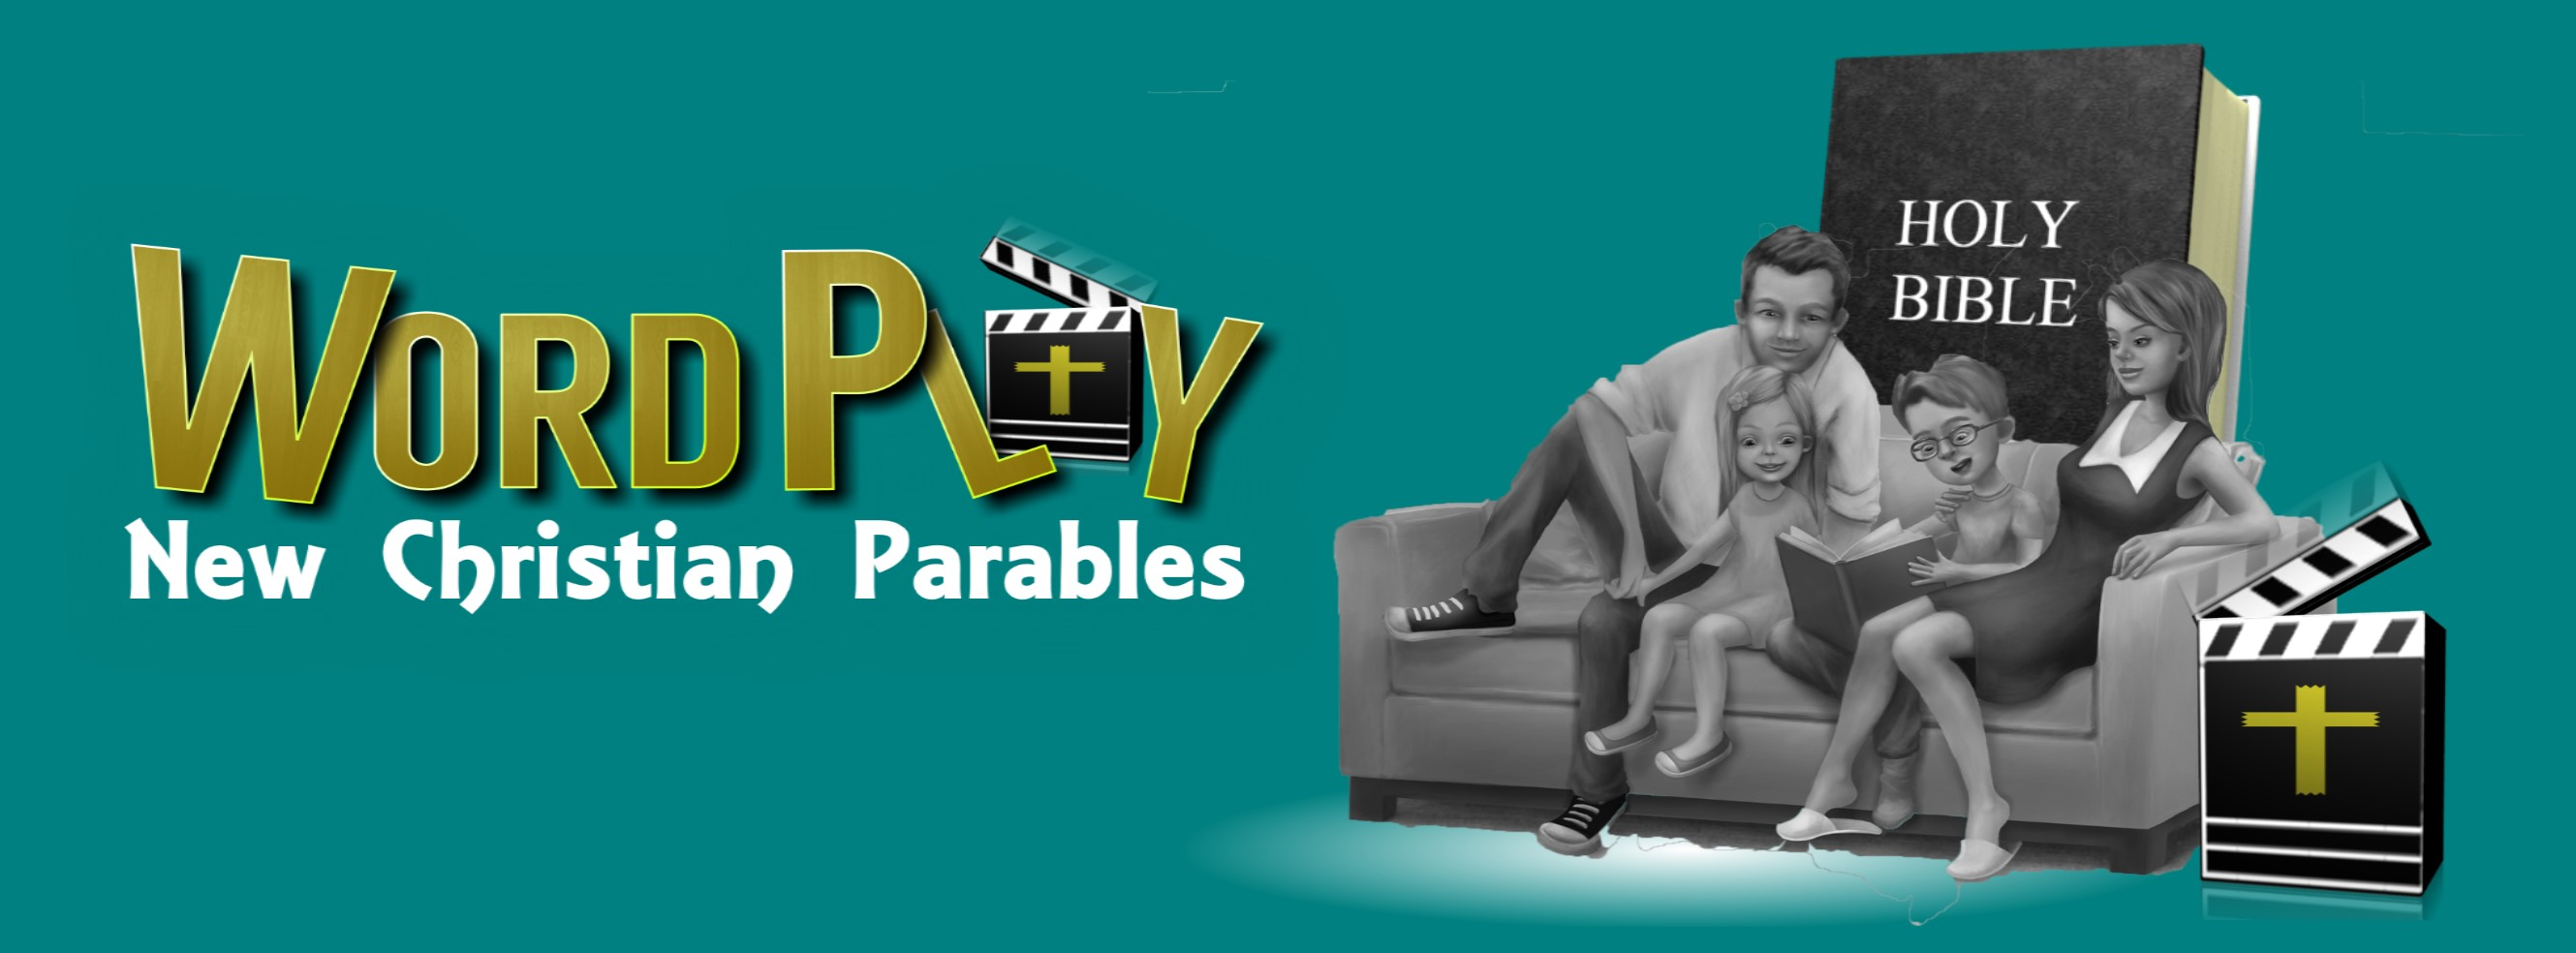 An interactive bible memory technique which animates scriptures to a mystery story rhythm of New Christian Parables! It's Sunday School from home with your family's favorite teacher: YOU!